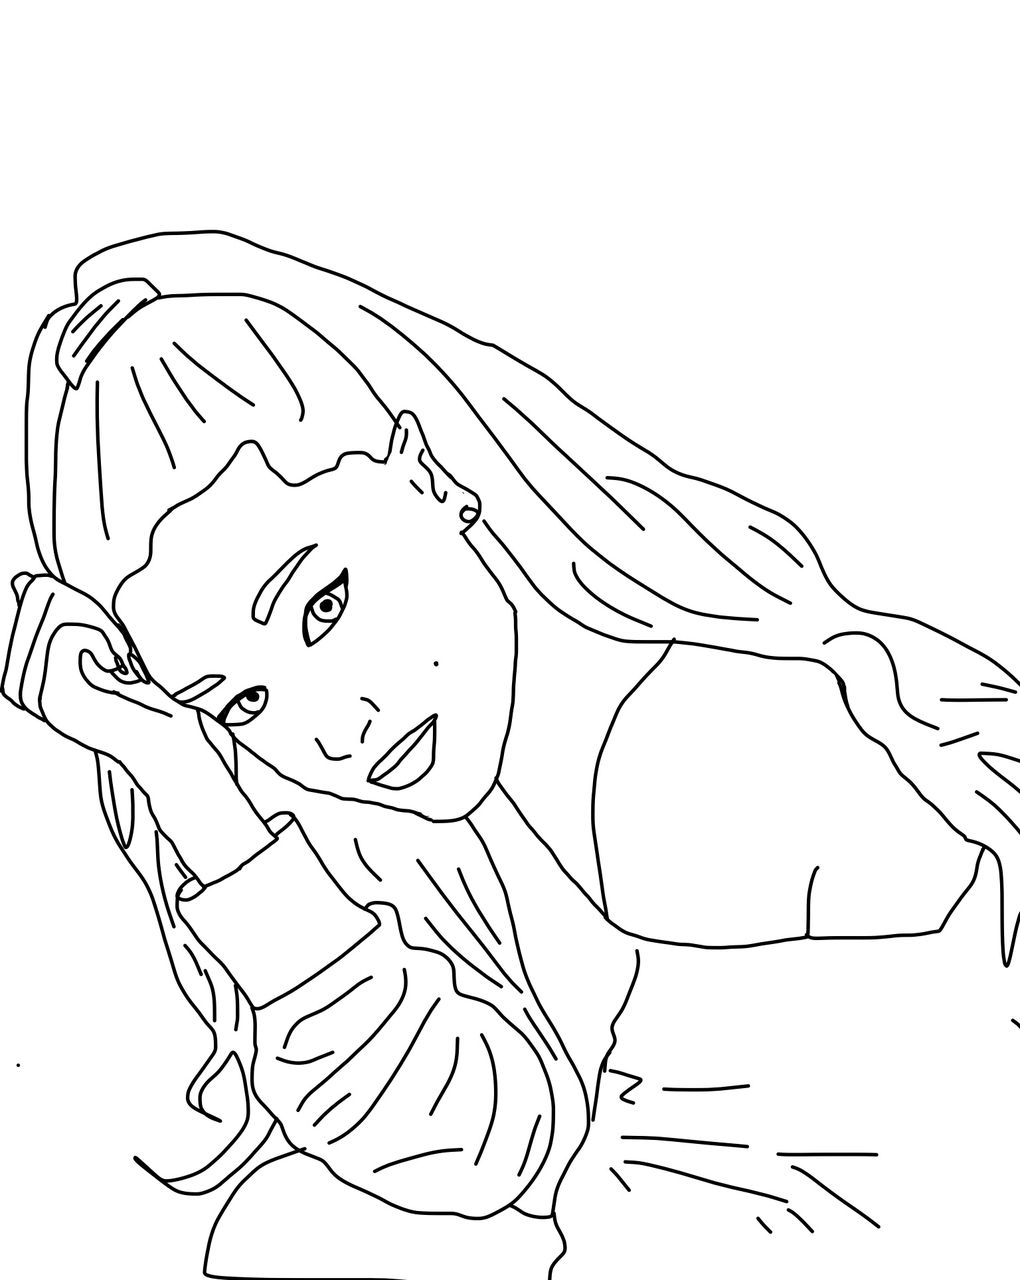 Ariana Grande Drawing Break Free Google Search Ariana Grande